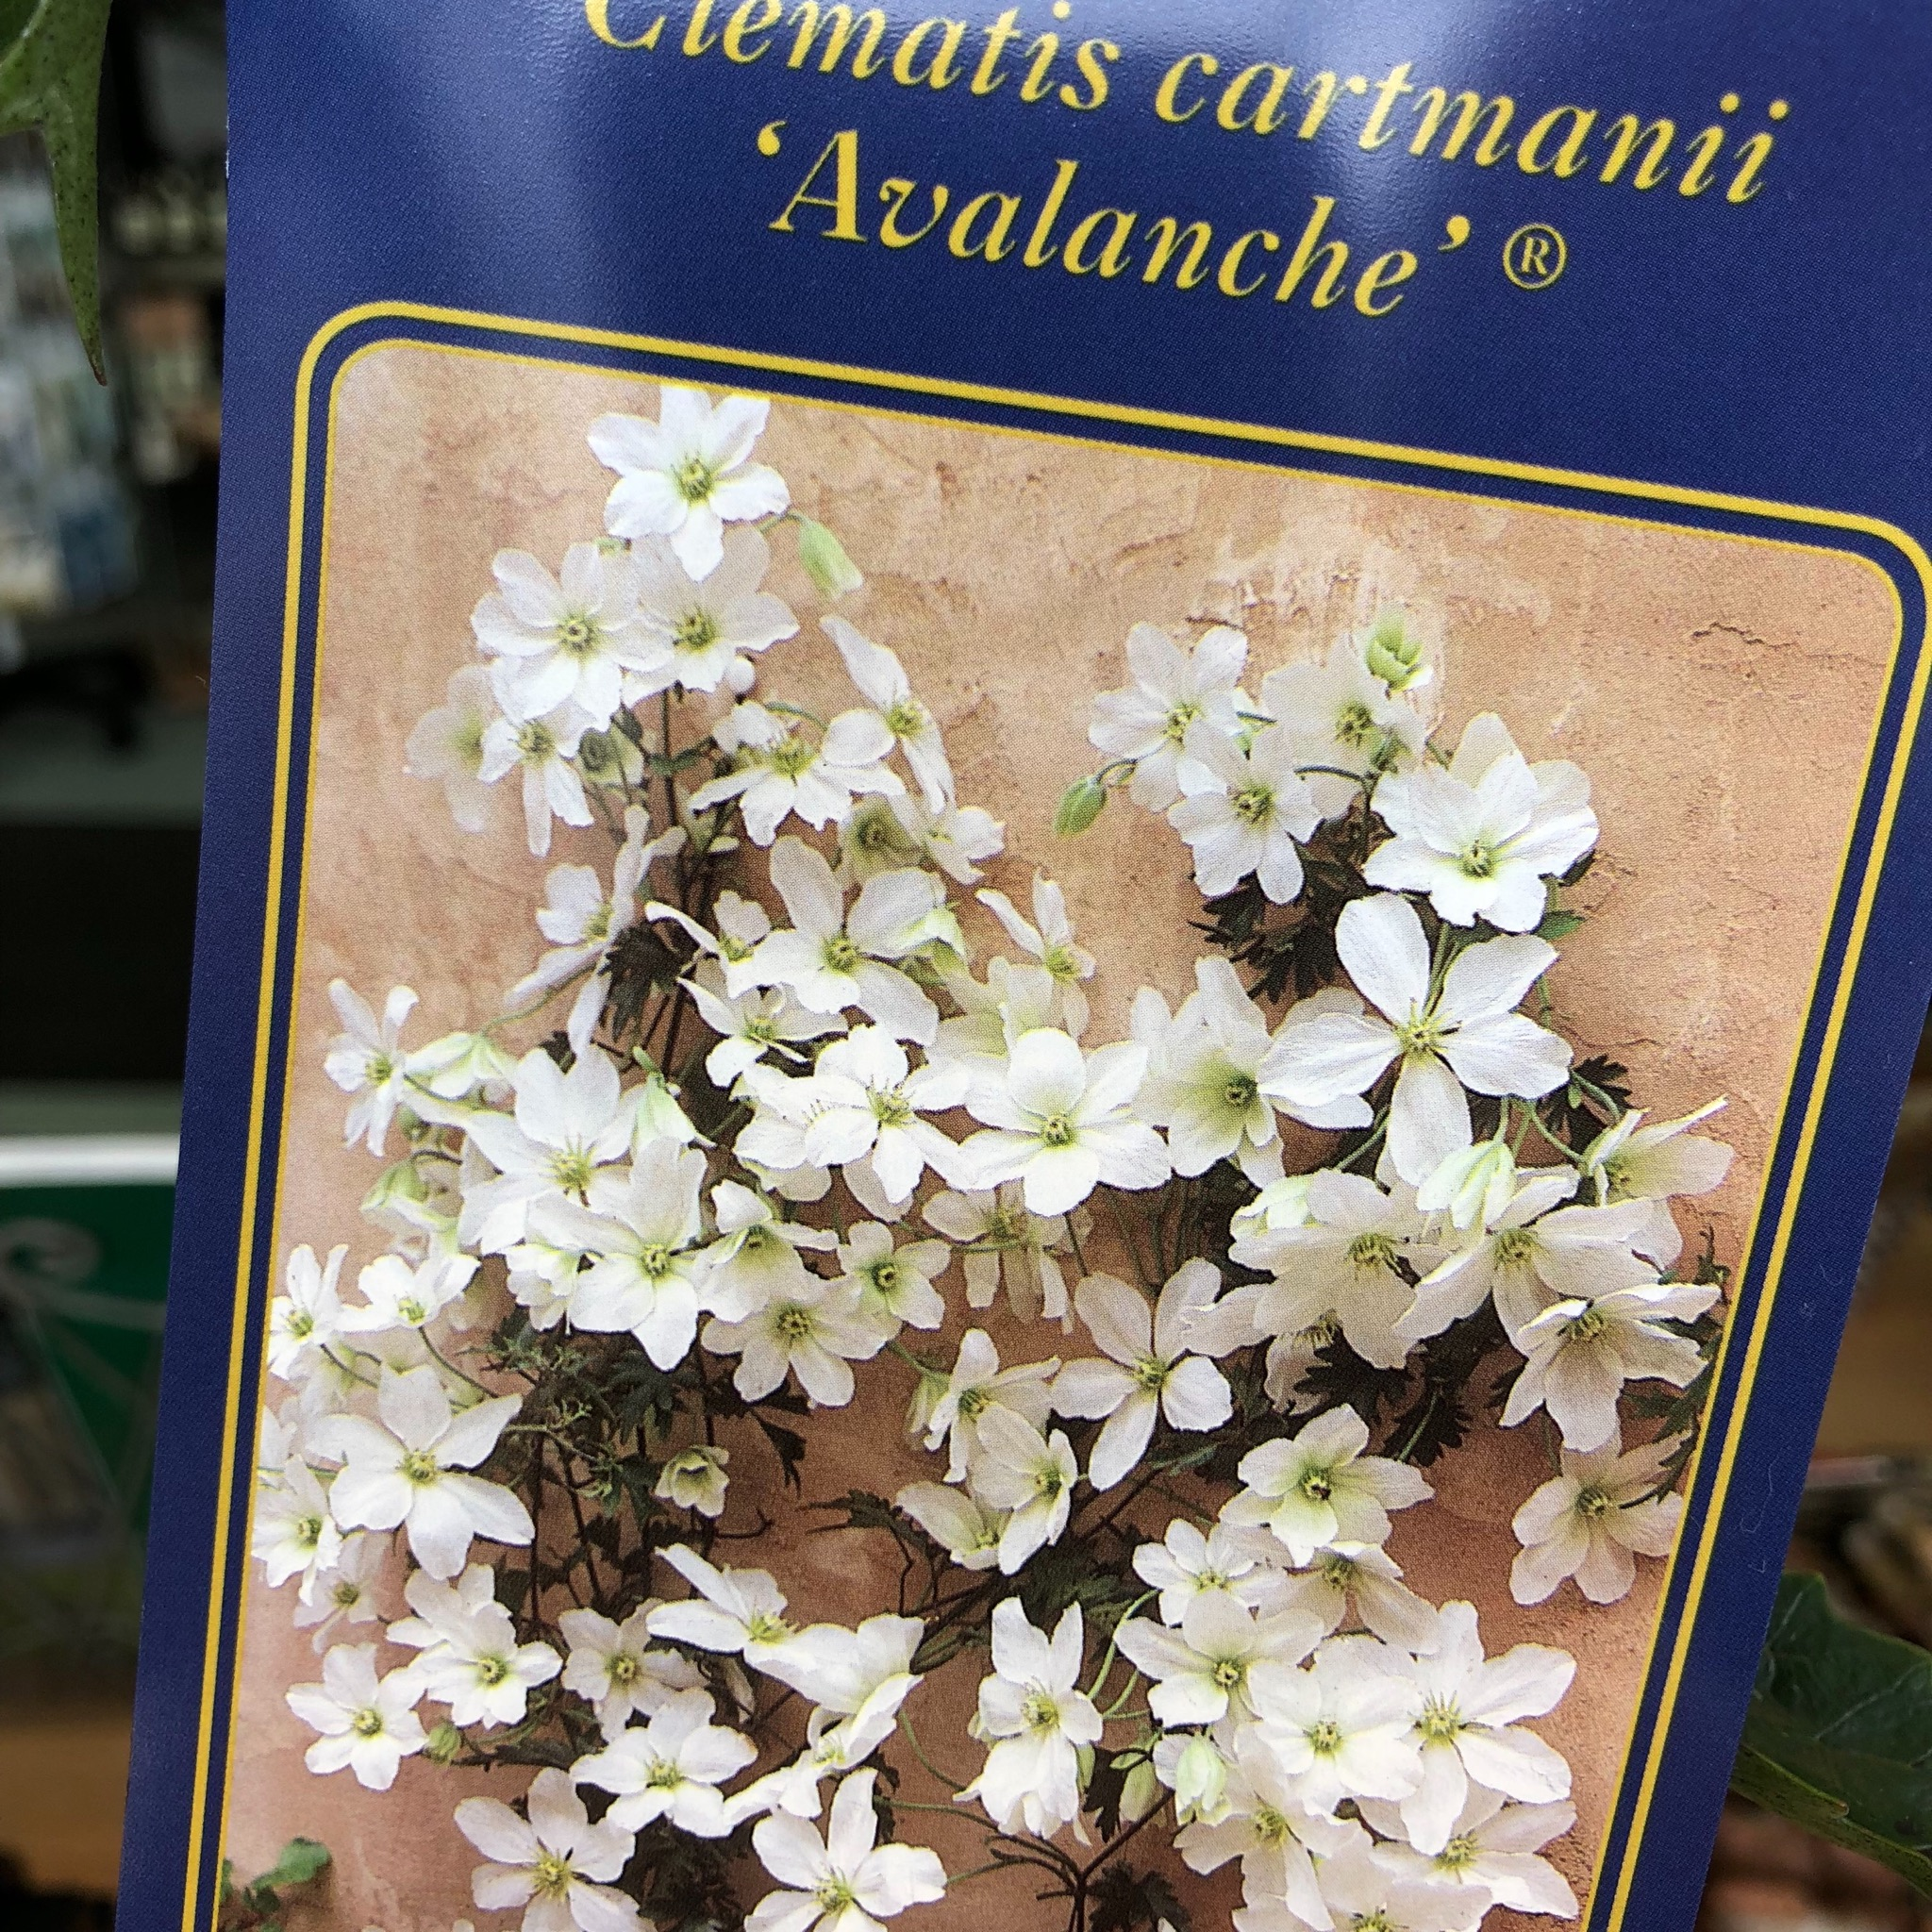 Picture of Clematis cartmanii 'Avalanche'